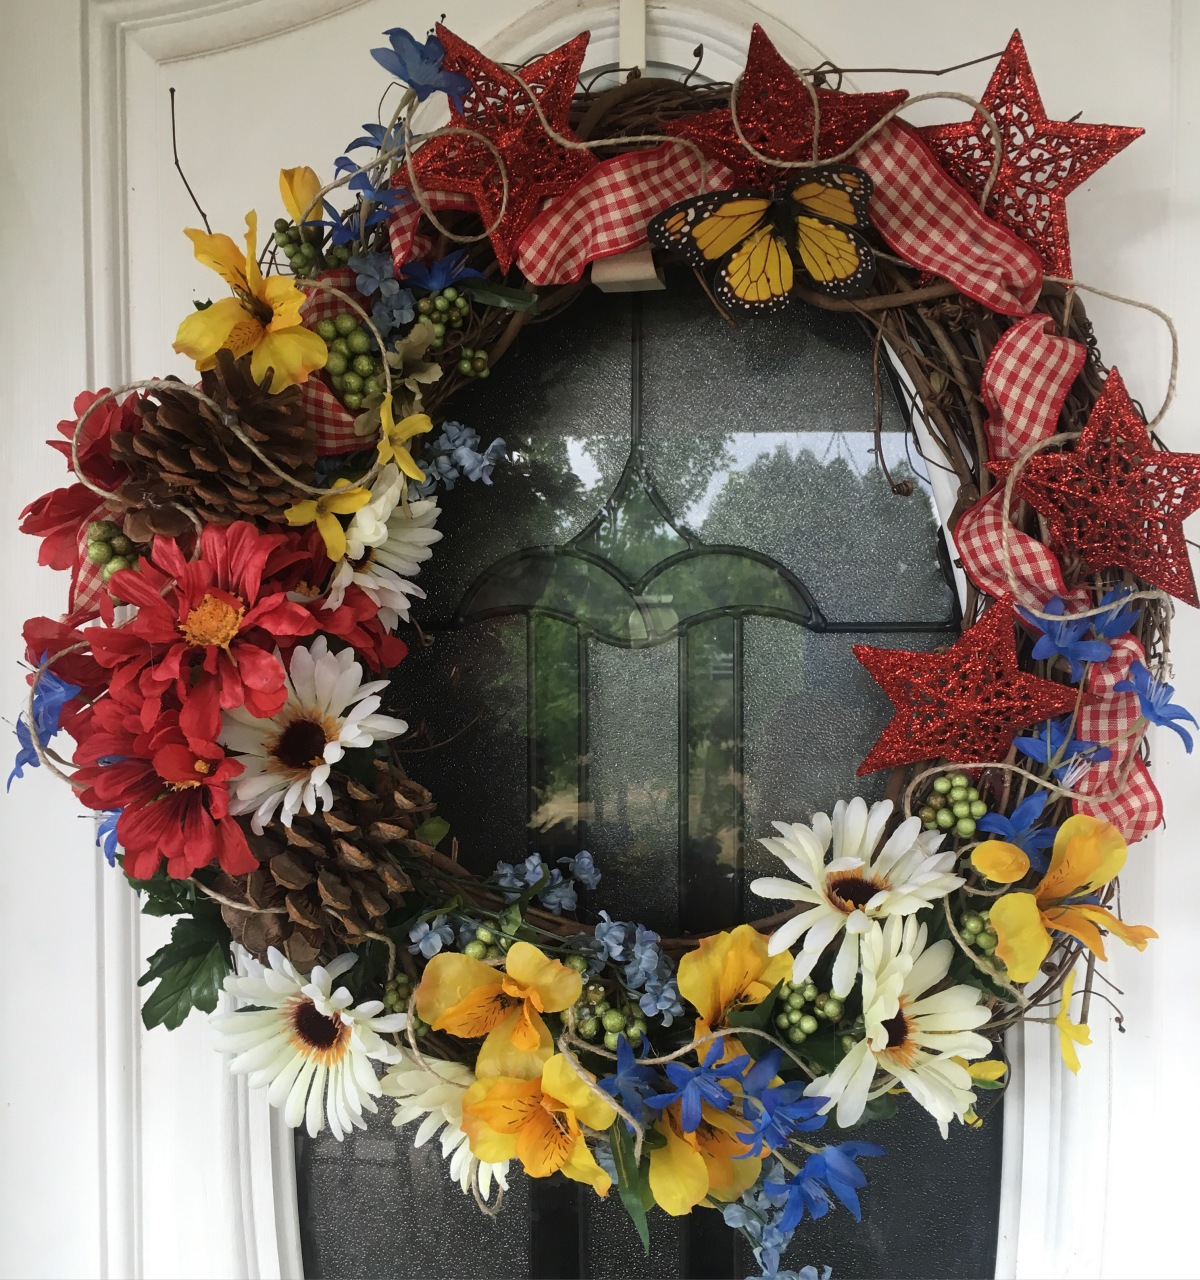 It's not Summer without a Pretty Wreath on the Door!